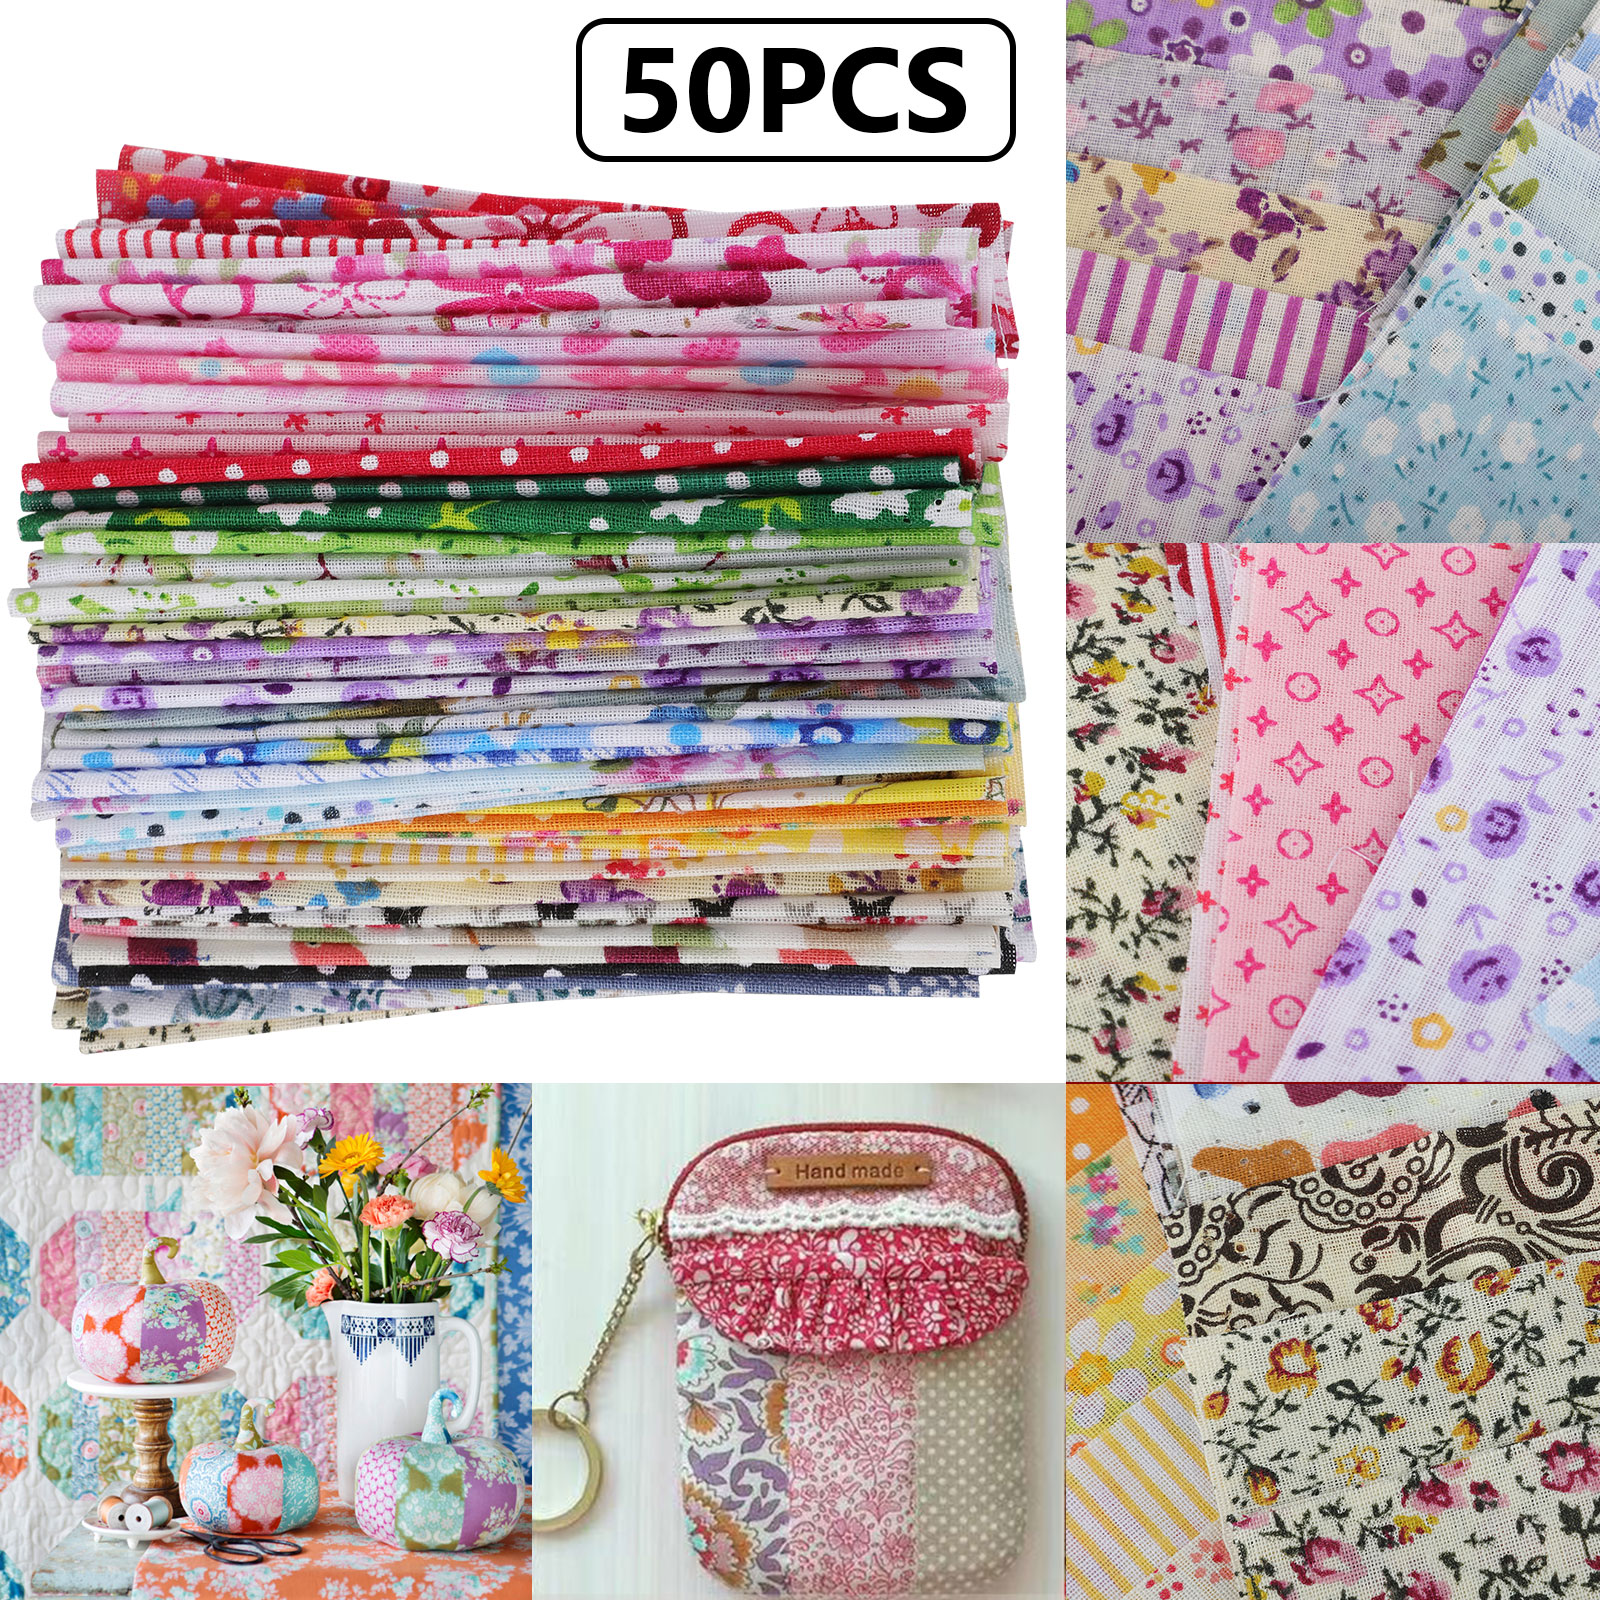 100Pcs Penta Angel 10 x 10cm Assorted Pre-Cut Printing Cotton Cloth Square Bundle Quilt Craft Fabric Patchwork DIY Sewing Scrapbooking Quilting Dot Pattern